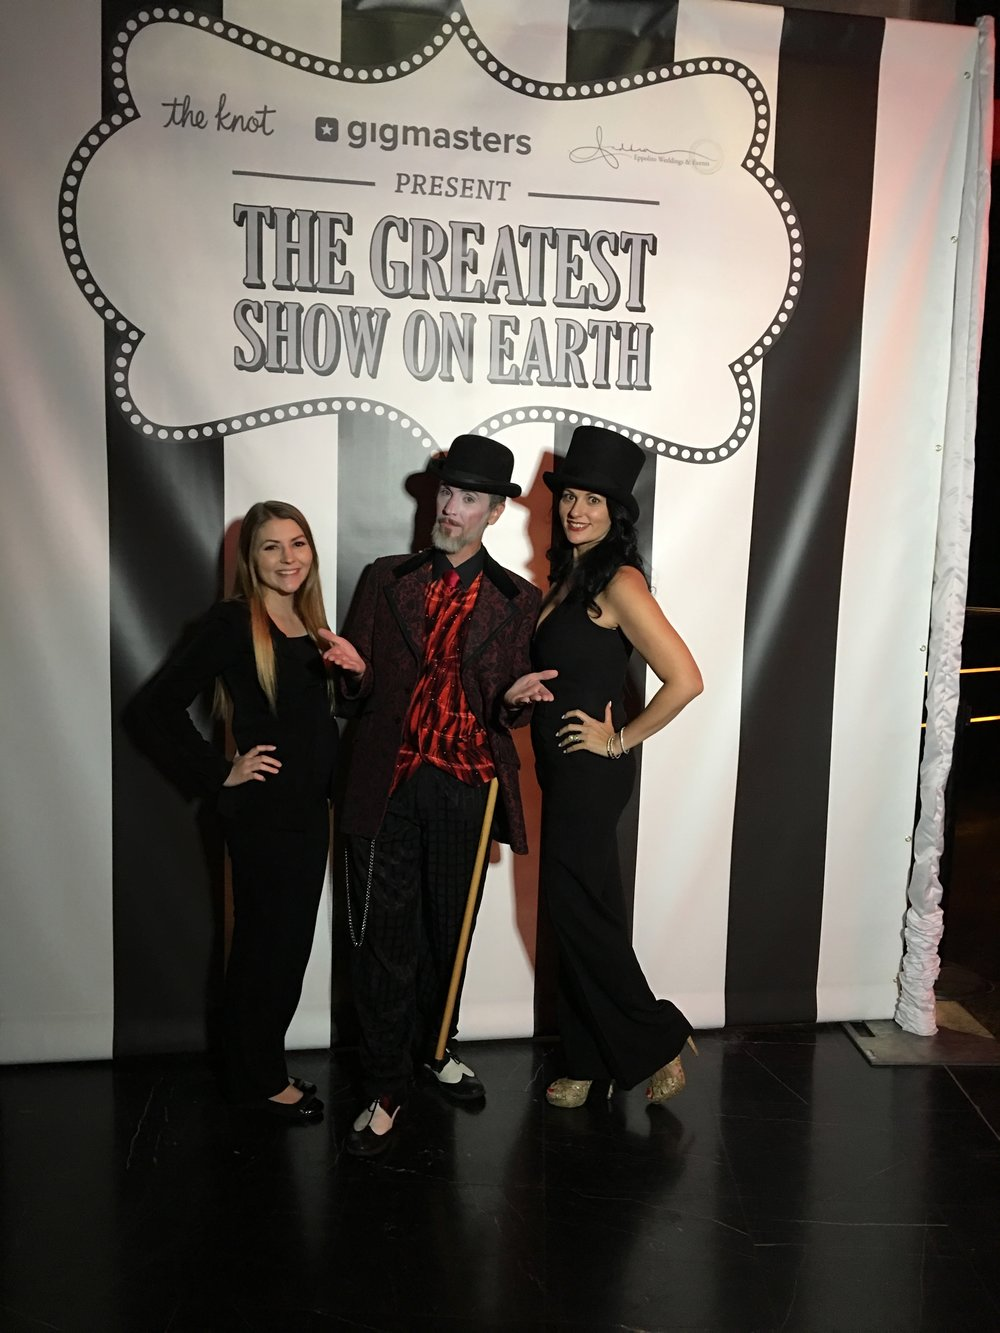 Welcome to the Greatest Show on Earth - The Dark Circus for The Knot Gala 2017 by Las Vegas Wedding Planner Andrea Eppolito .